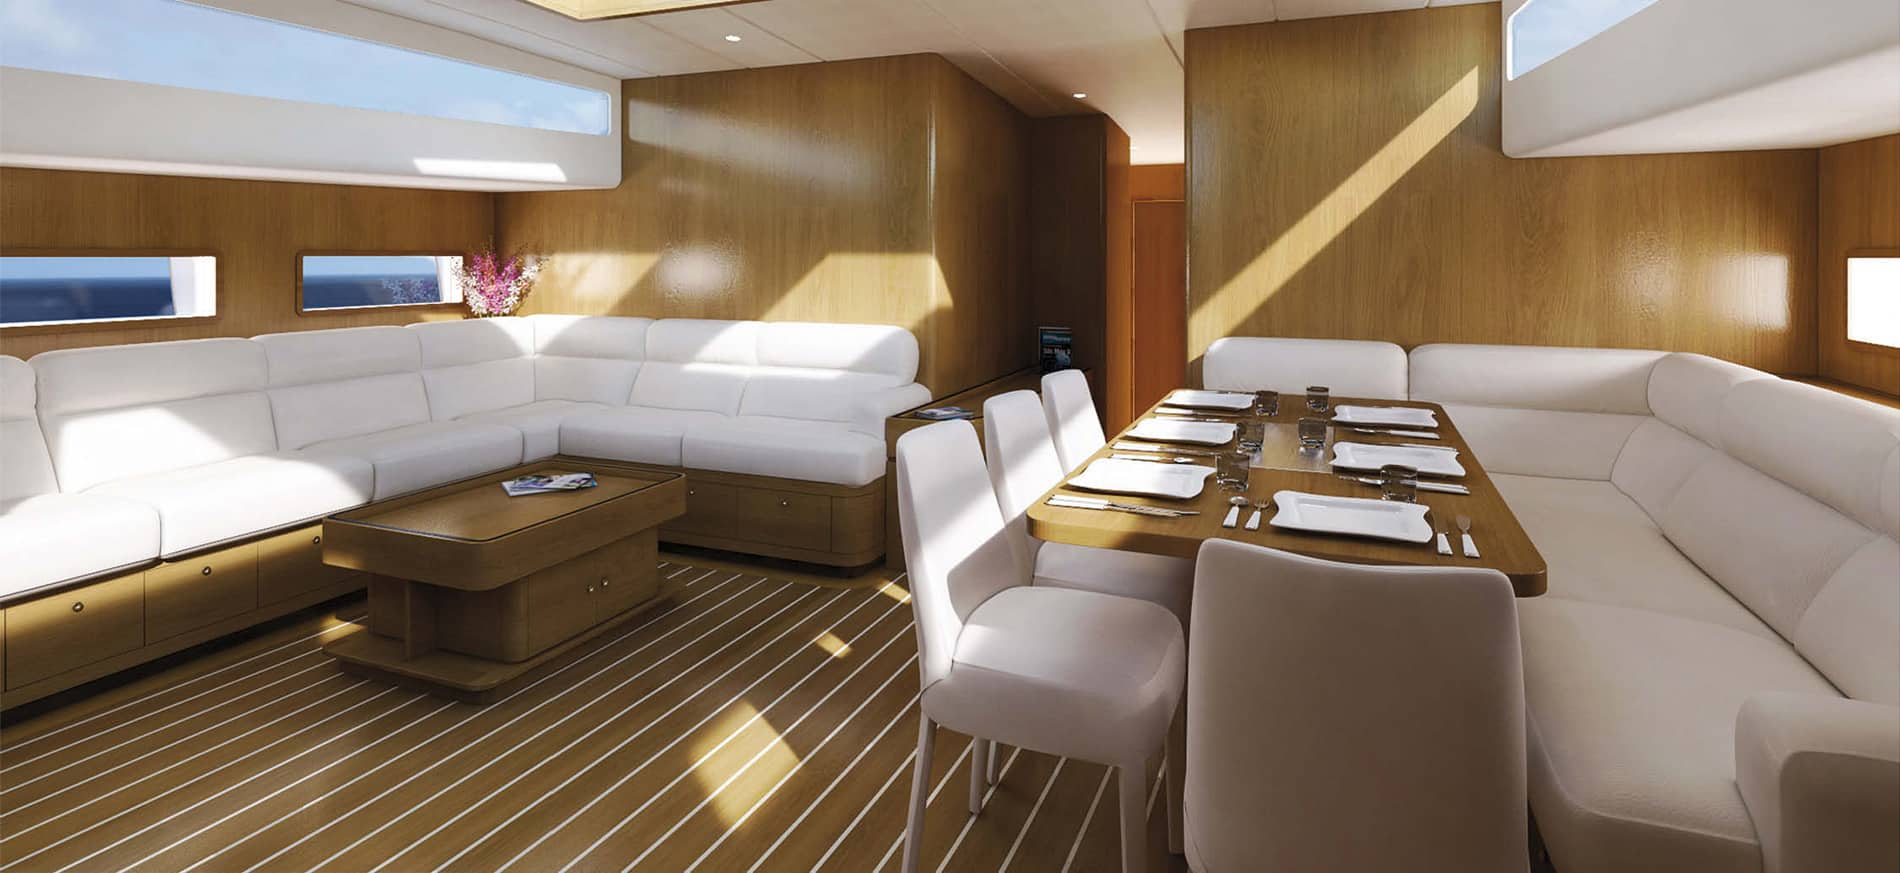 The saloon from the Tommaso Spadolini-designed craft